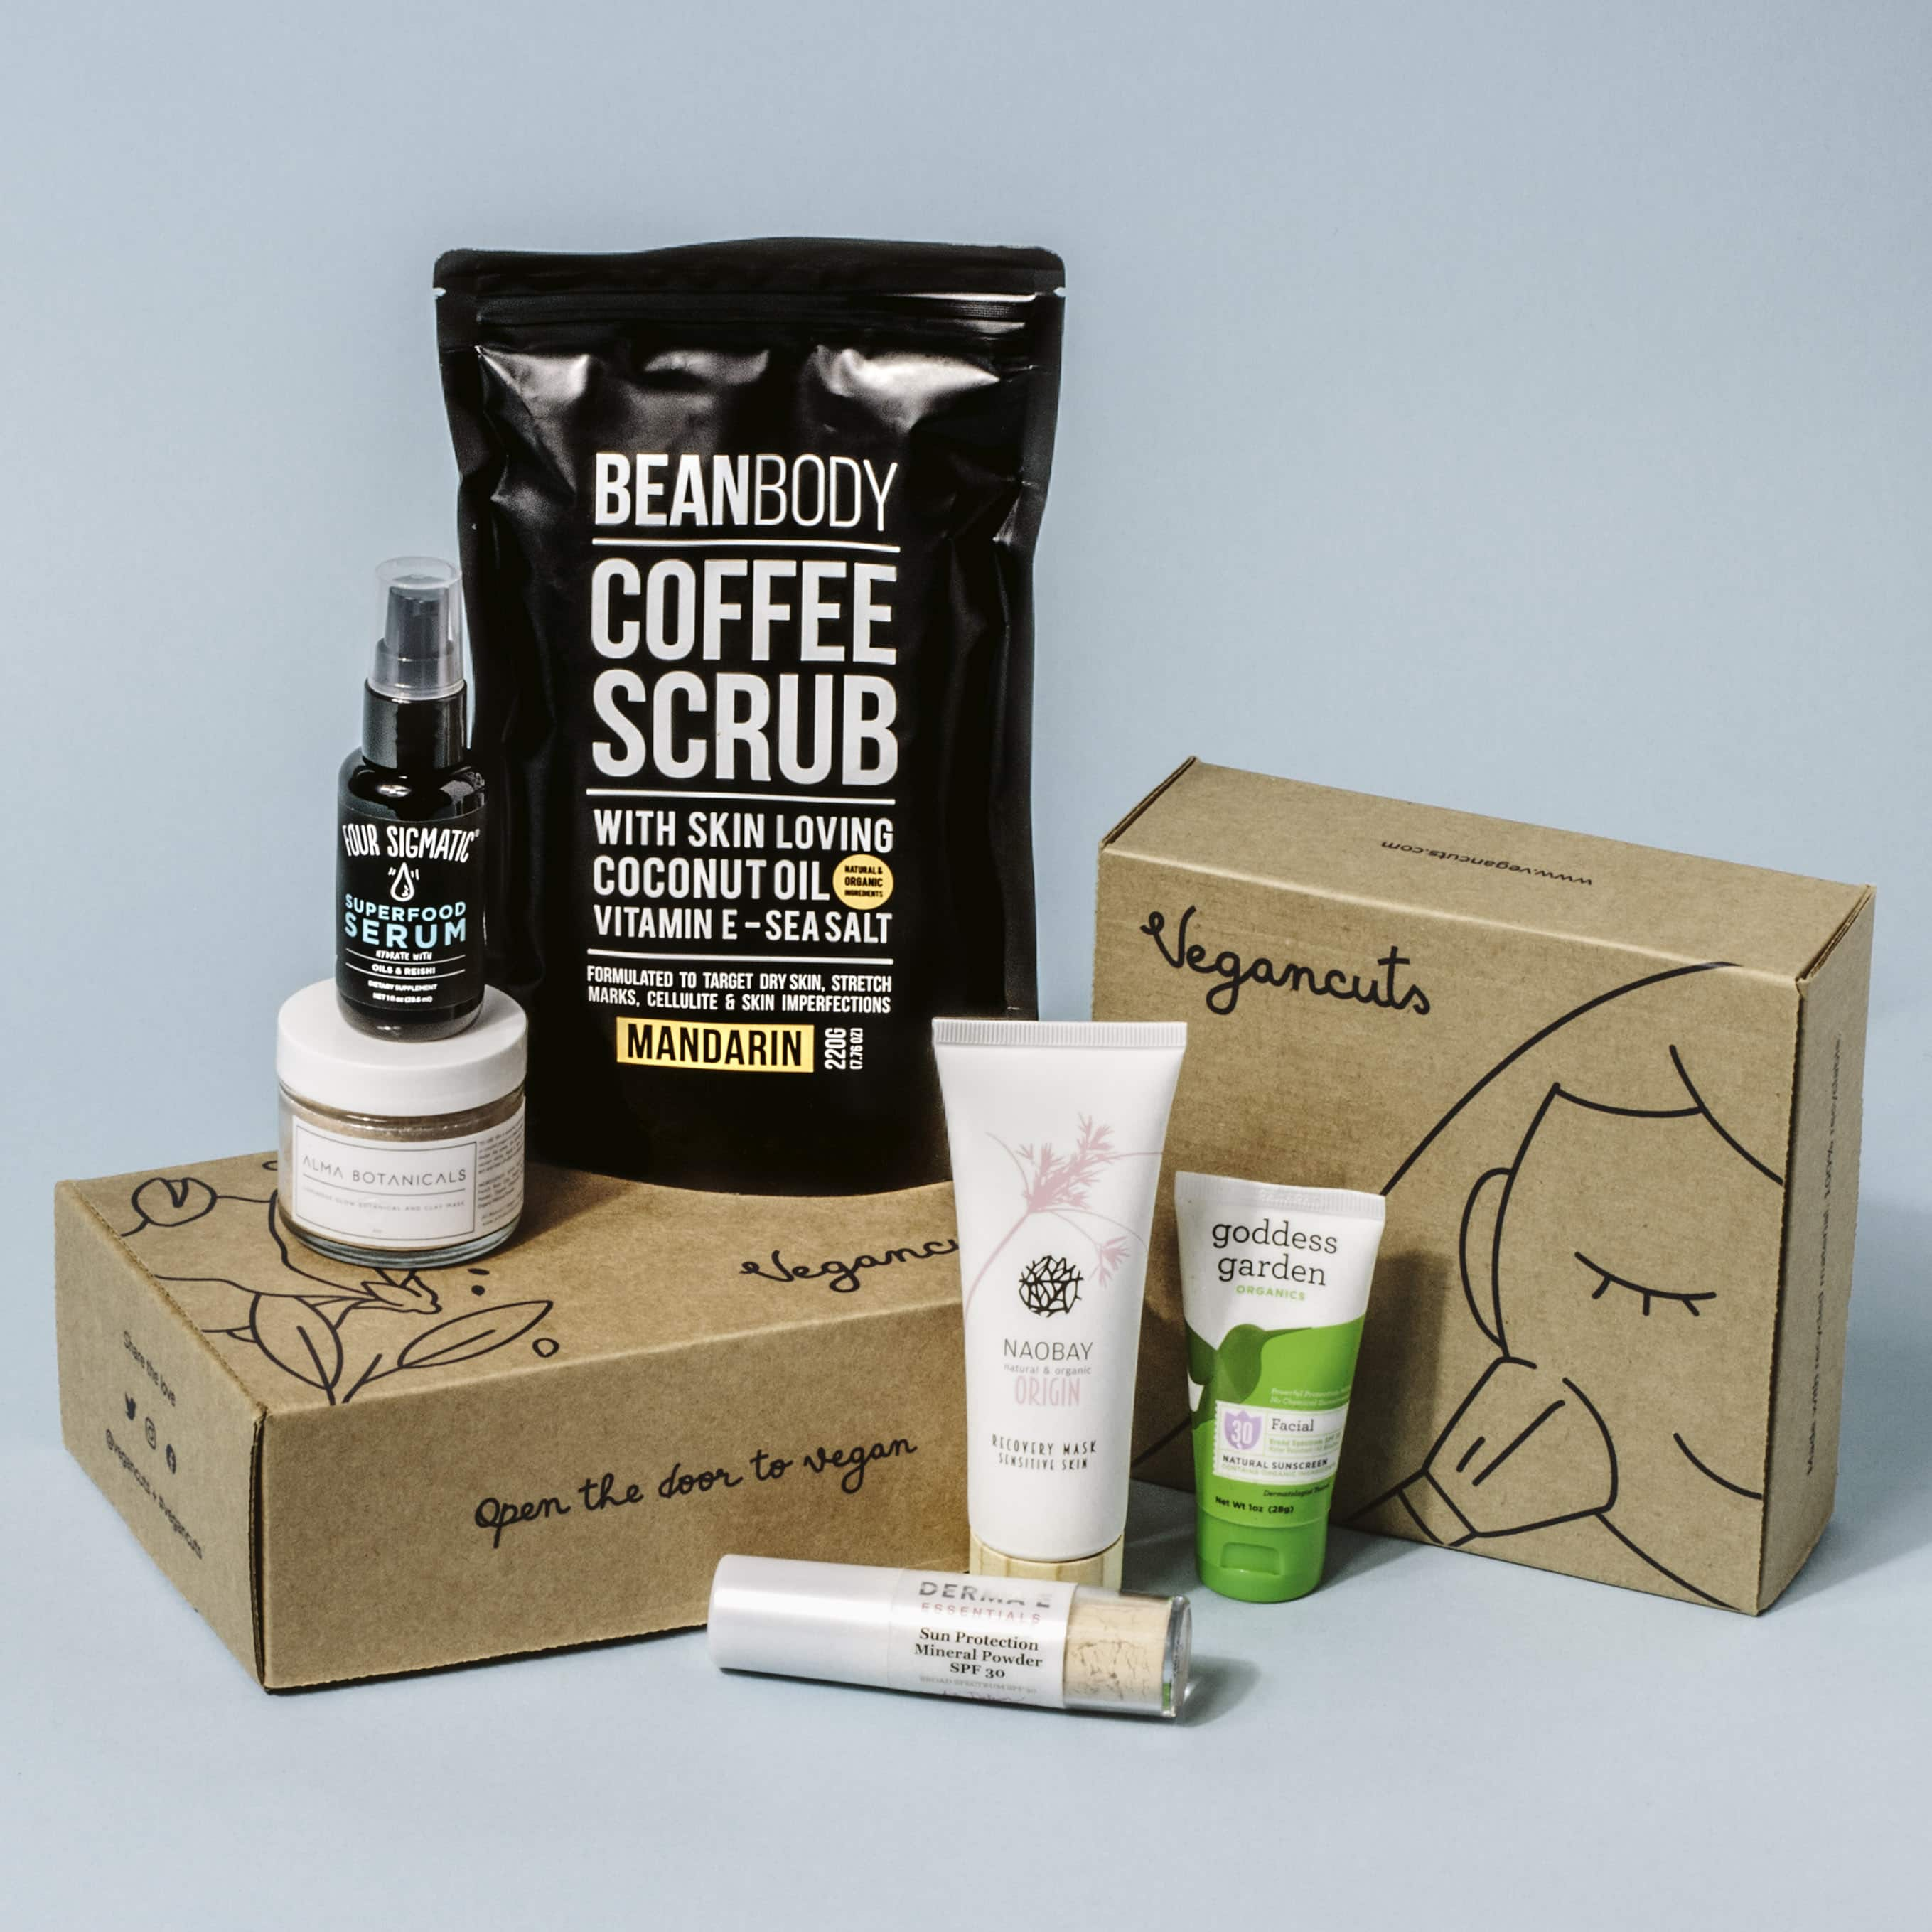 Vegancuts Beauty Box November 2019 Full Spoilers + Coupon!